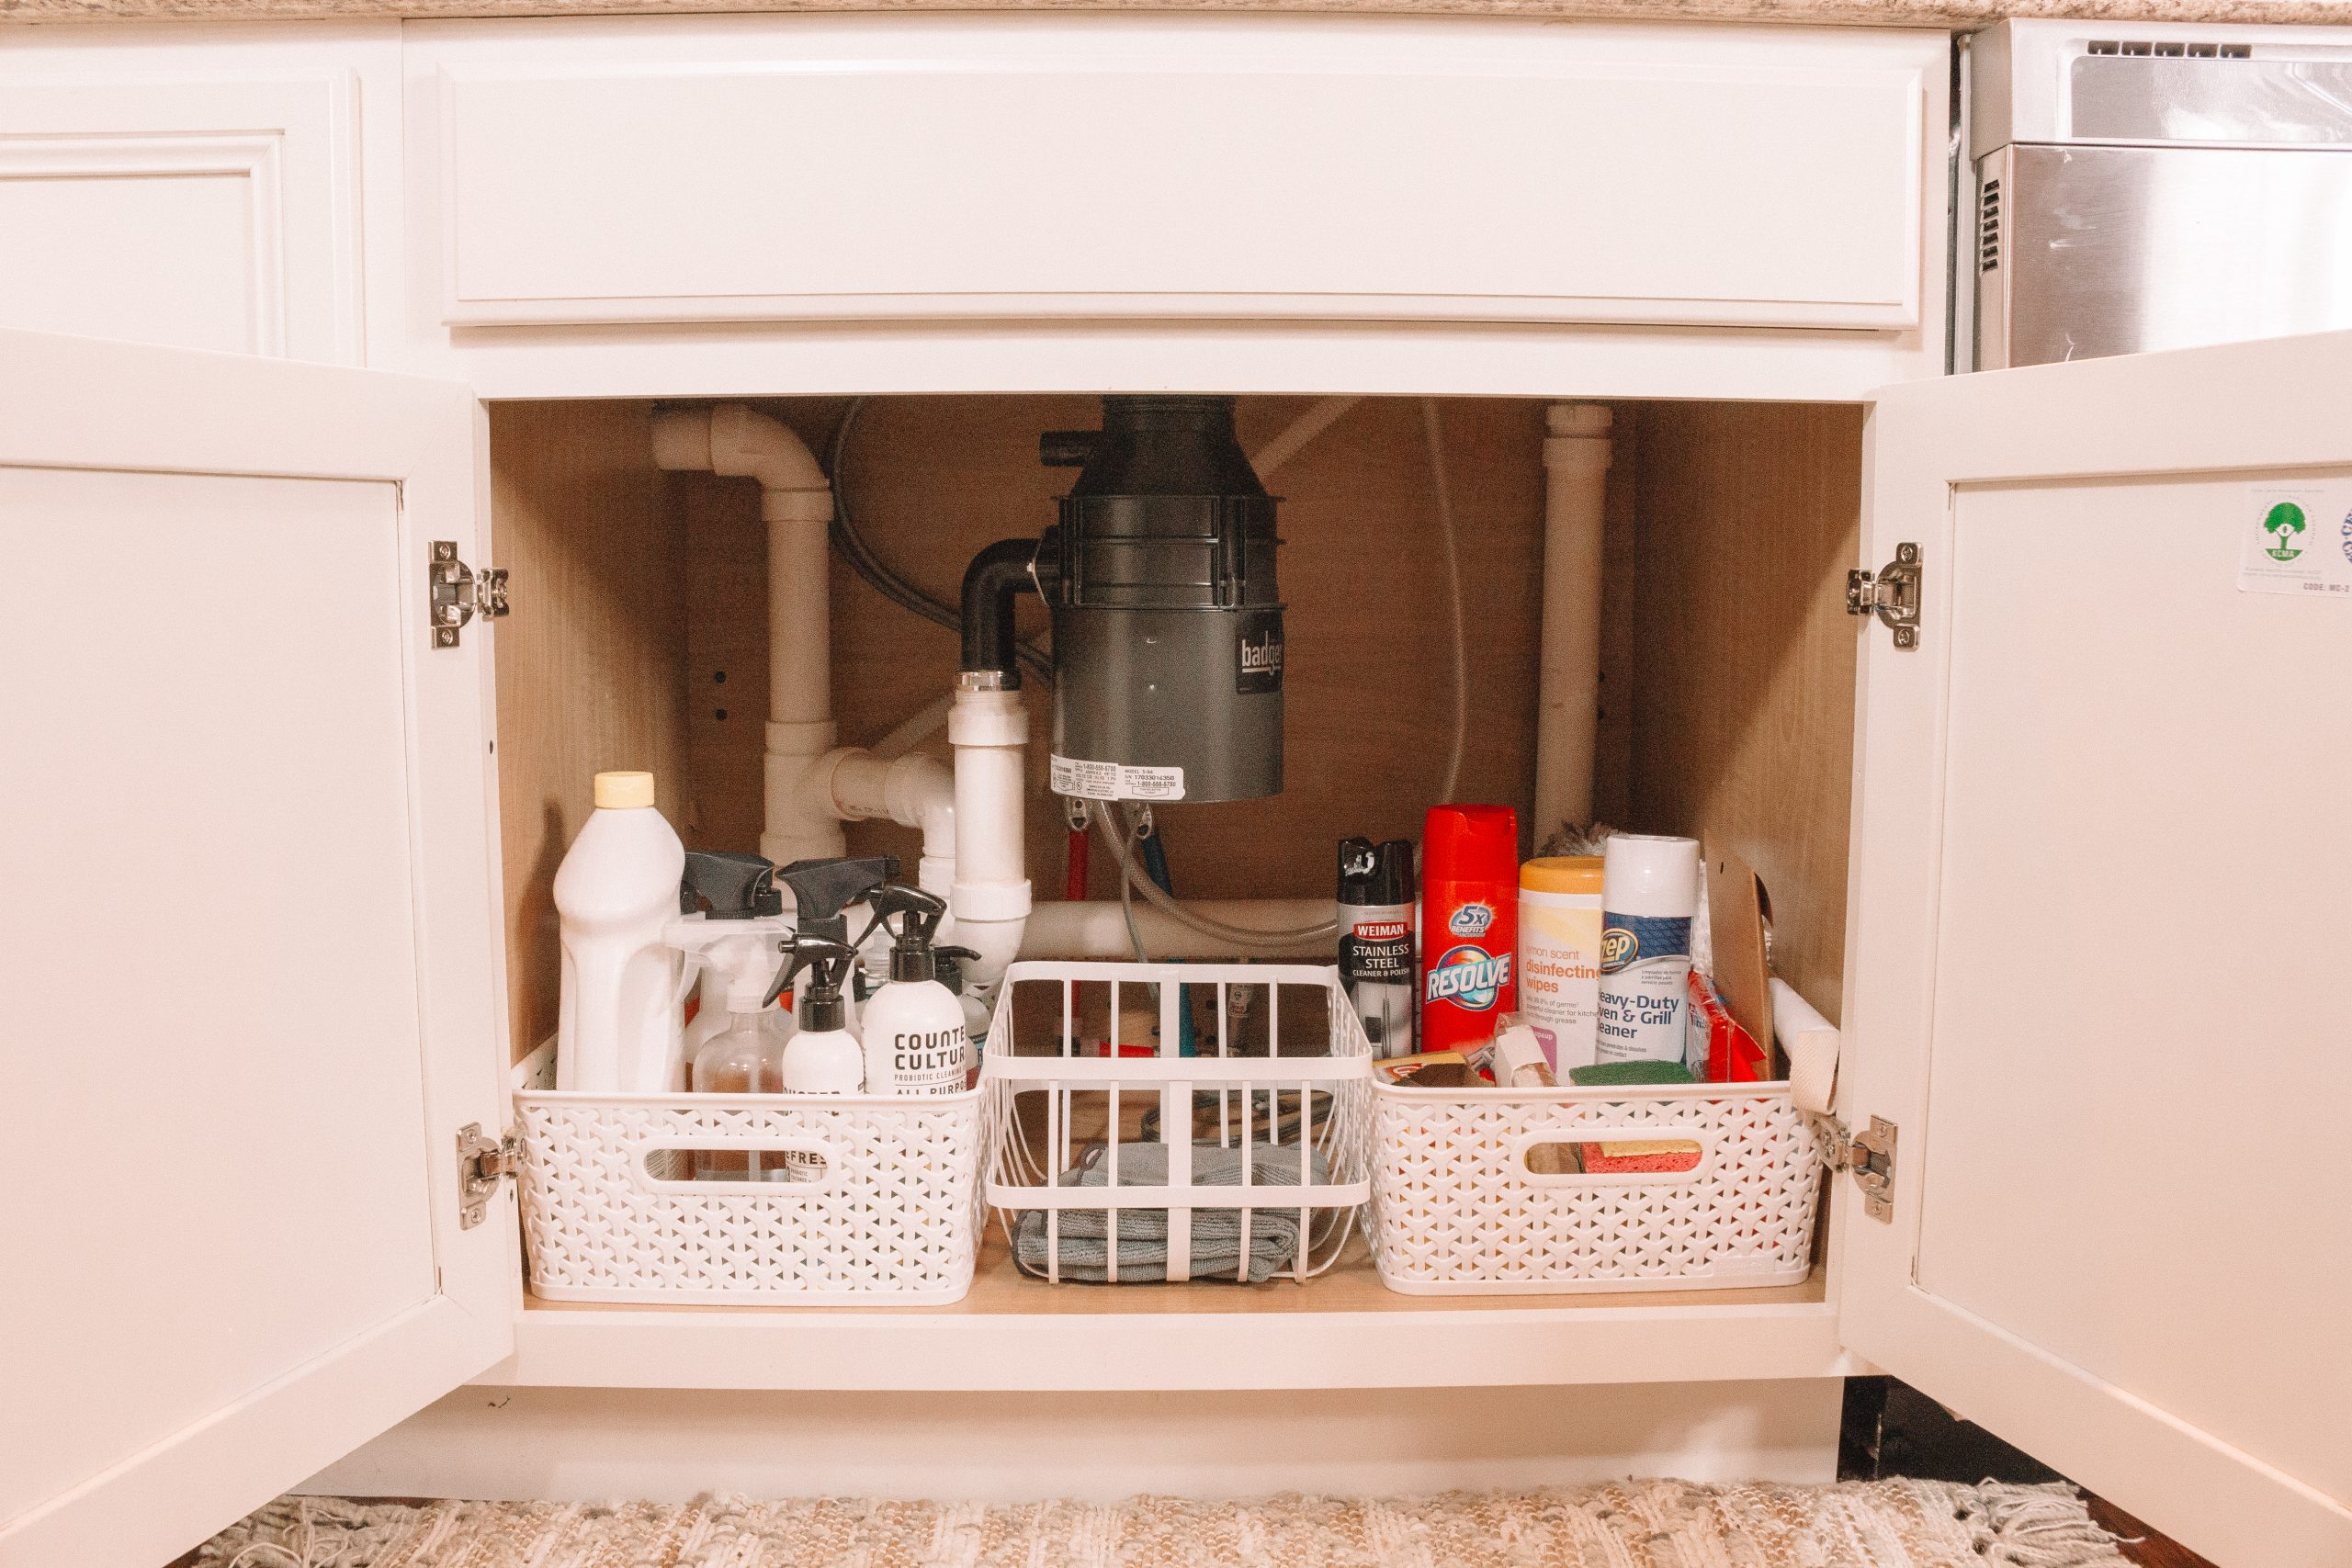 How to Organize under the Kitchen Sink | Hey Its Camille Grey #organize #kitchen #springclean